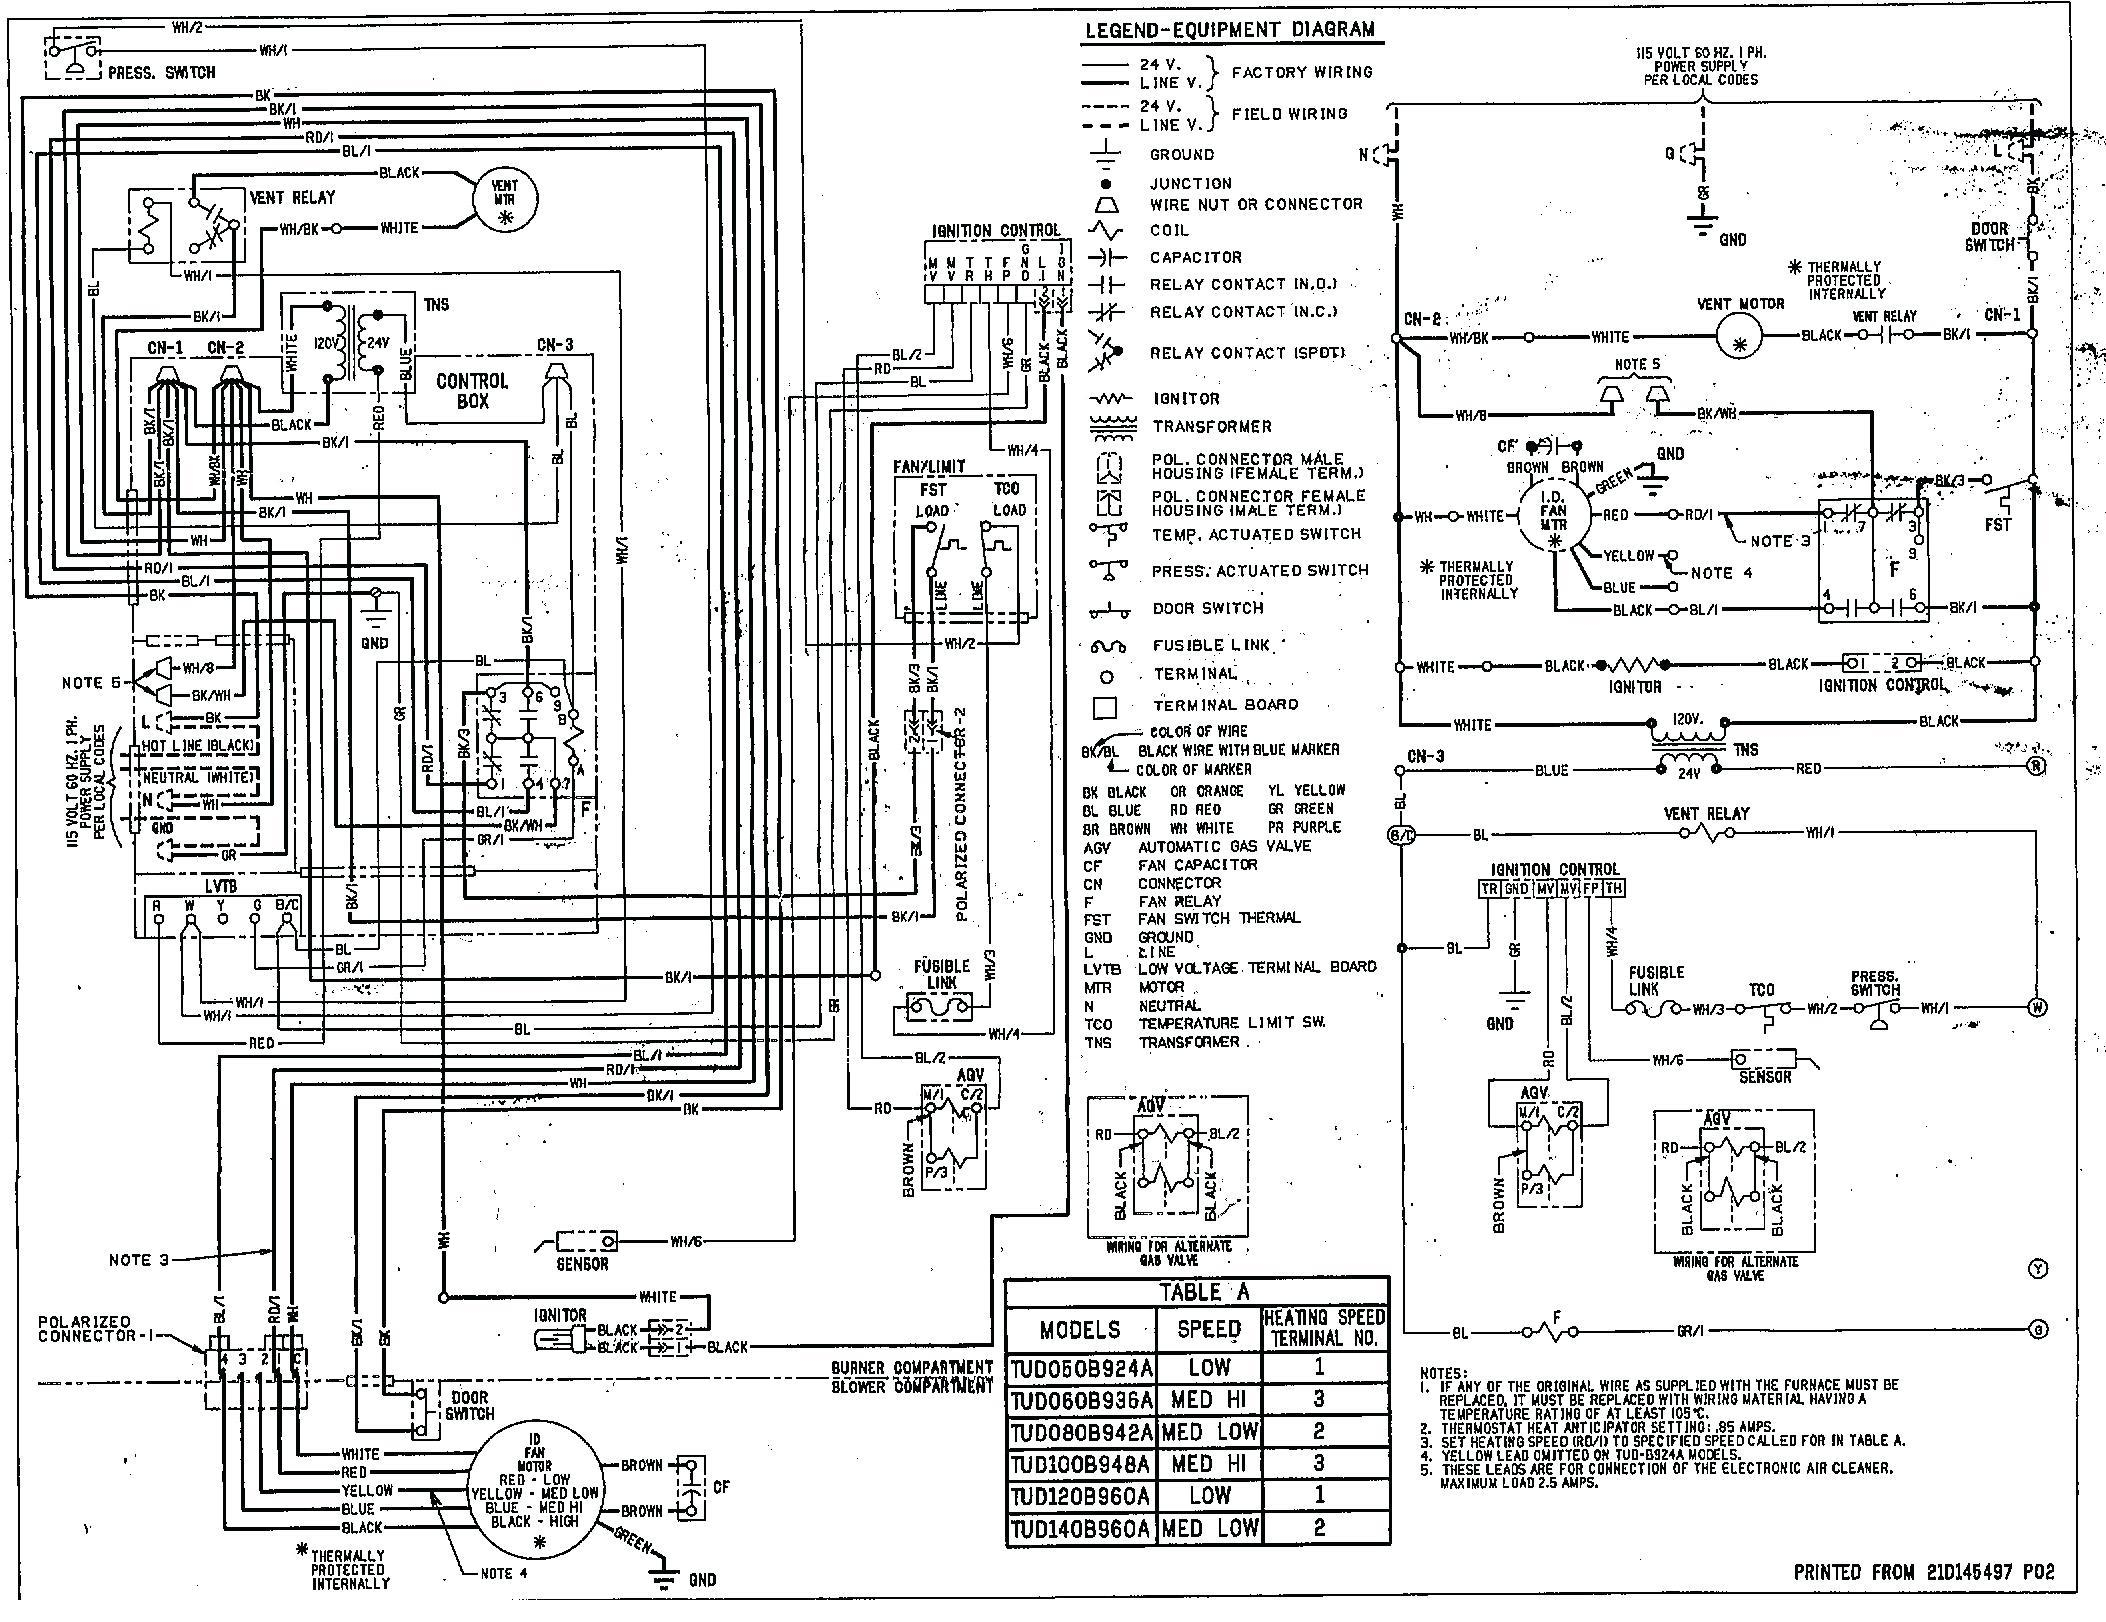 gas furnace control board wiring diagram Download-Wireless Focuspro Thermostat Trane Xl80 Furnace Wiring Diagram I Have Found The Control Box Circuit Board Lennox To Older Gas At Trane Wiring Diagram 15-r